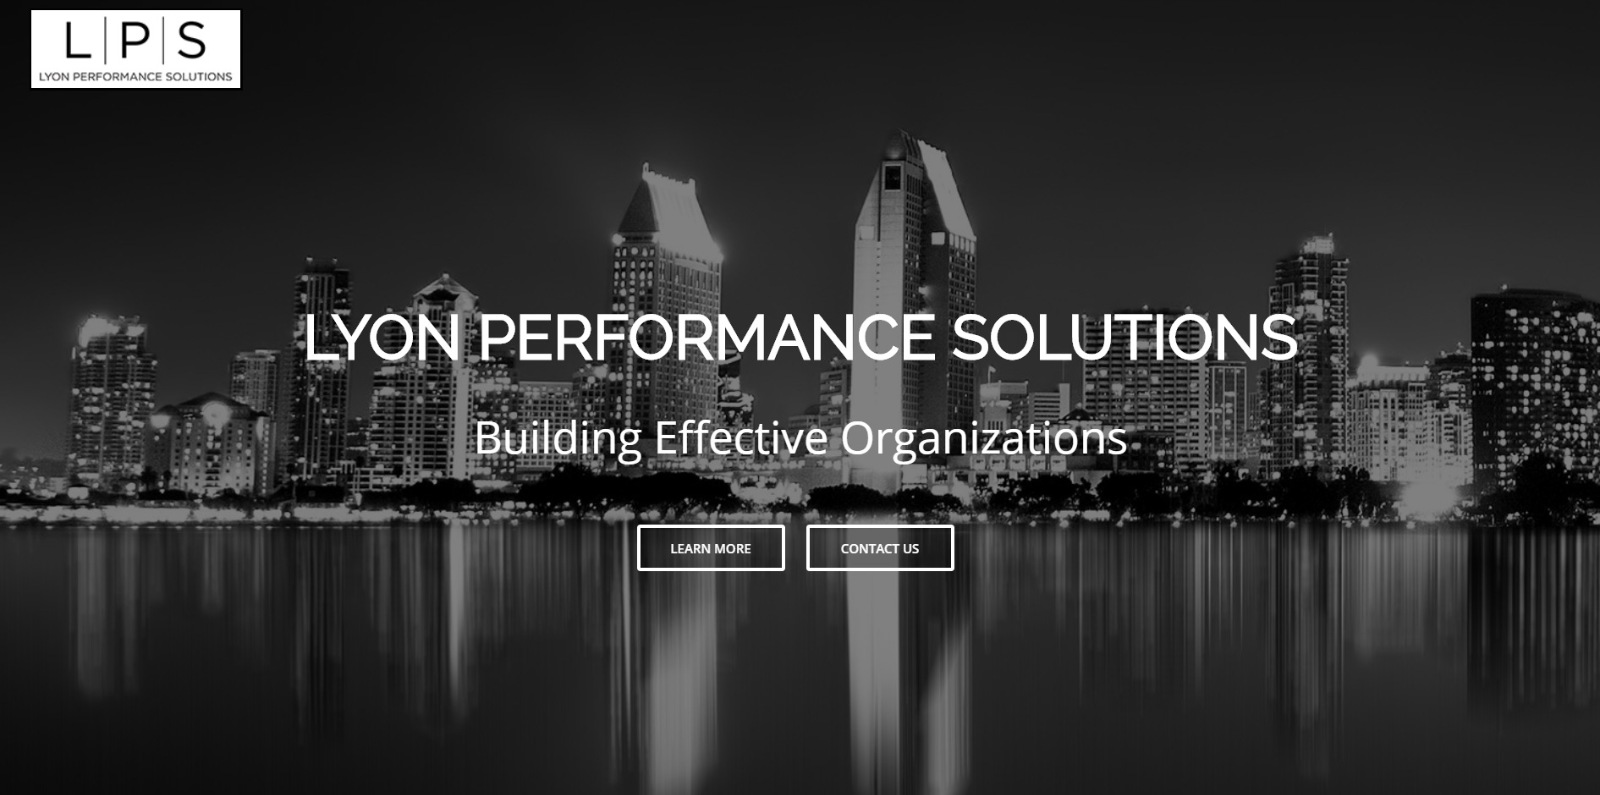 Lyon Performance Solutions